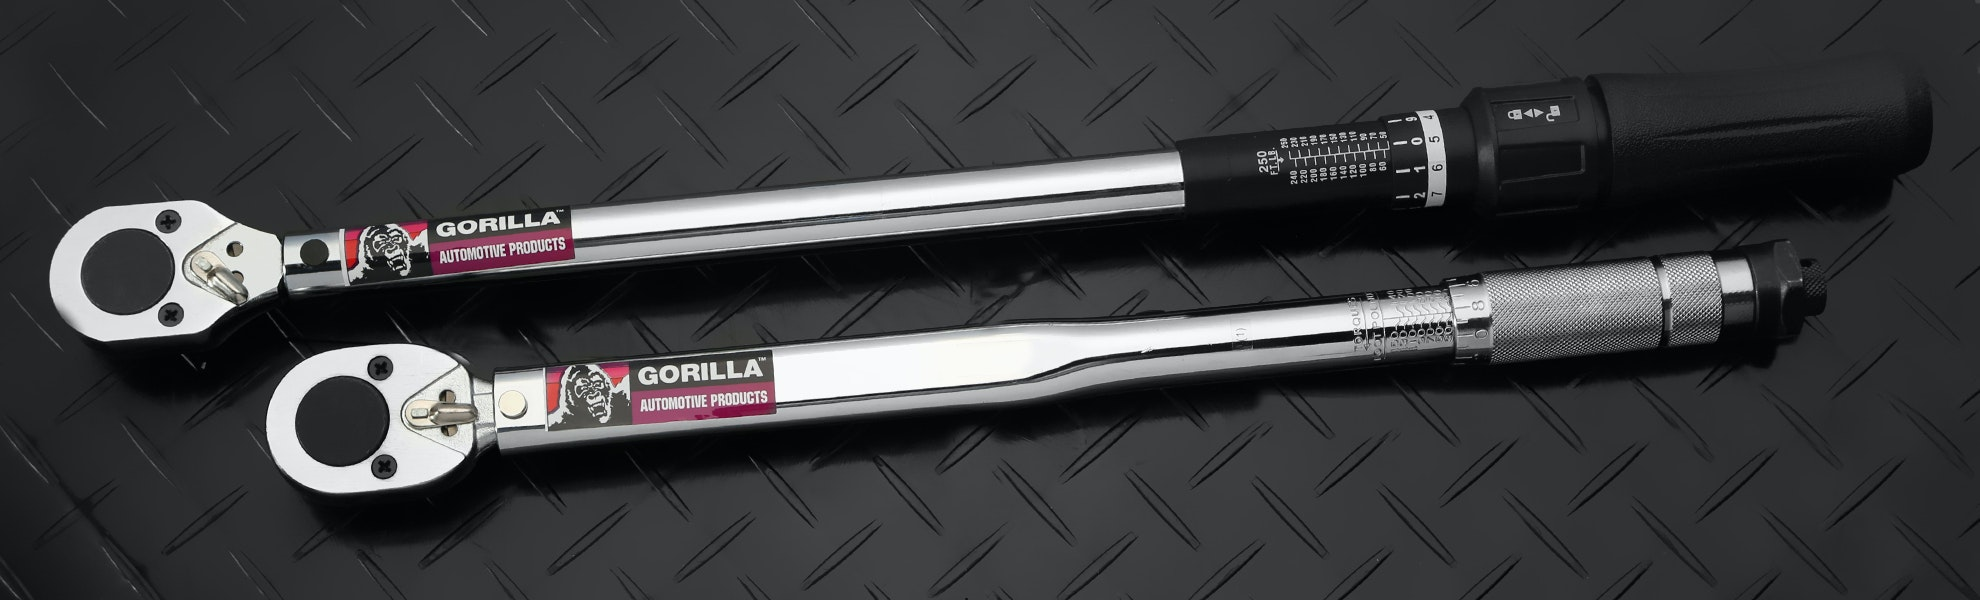 Gorilla Adjustable Torque Wrench